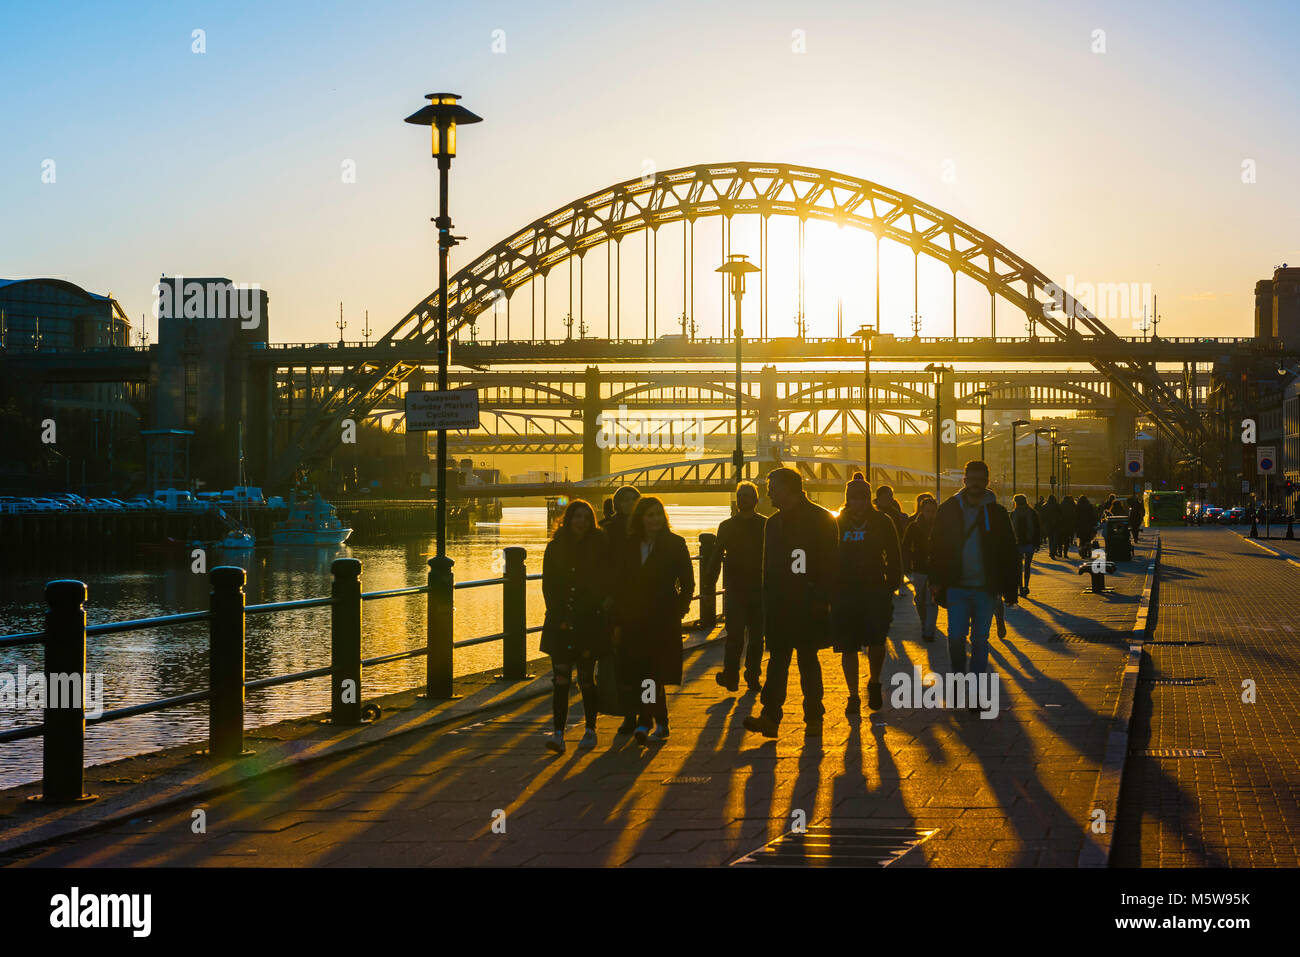 Newcastle Tyne Bridge, view at sunset of people walking in the quayside area of Newcastle, England, with the iconic - Stock Image